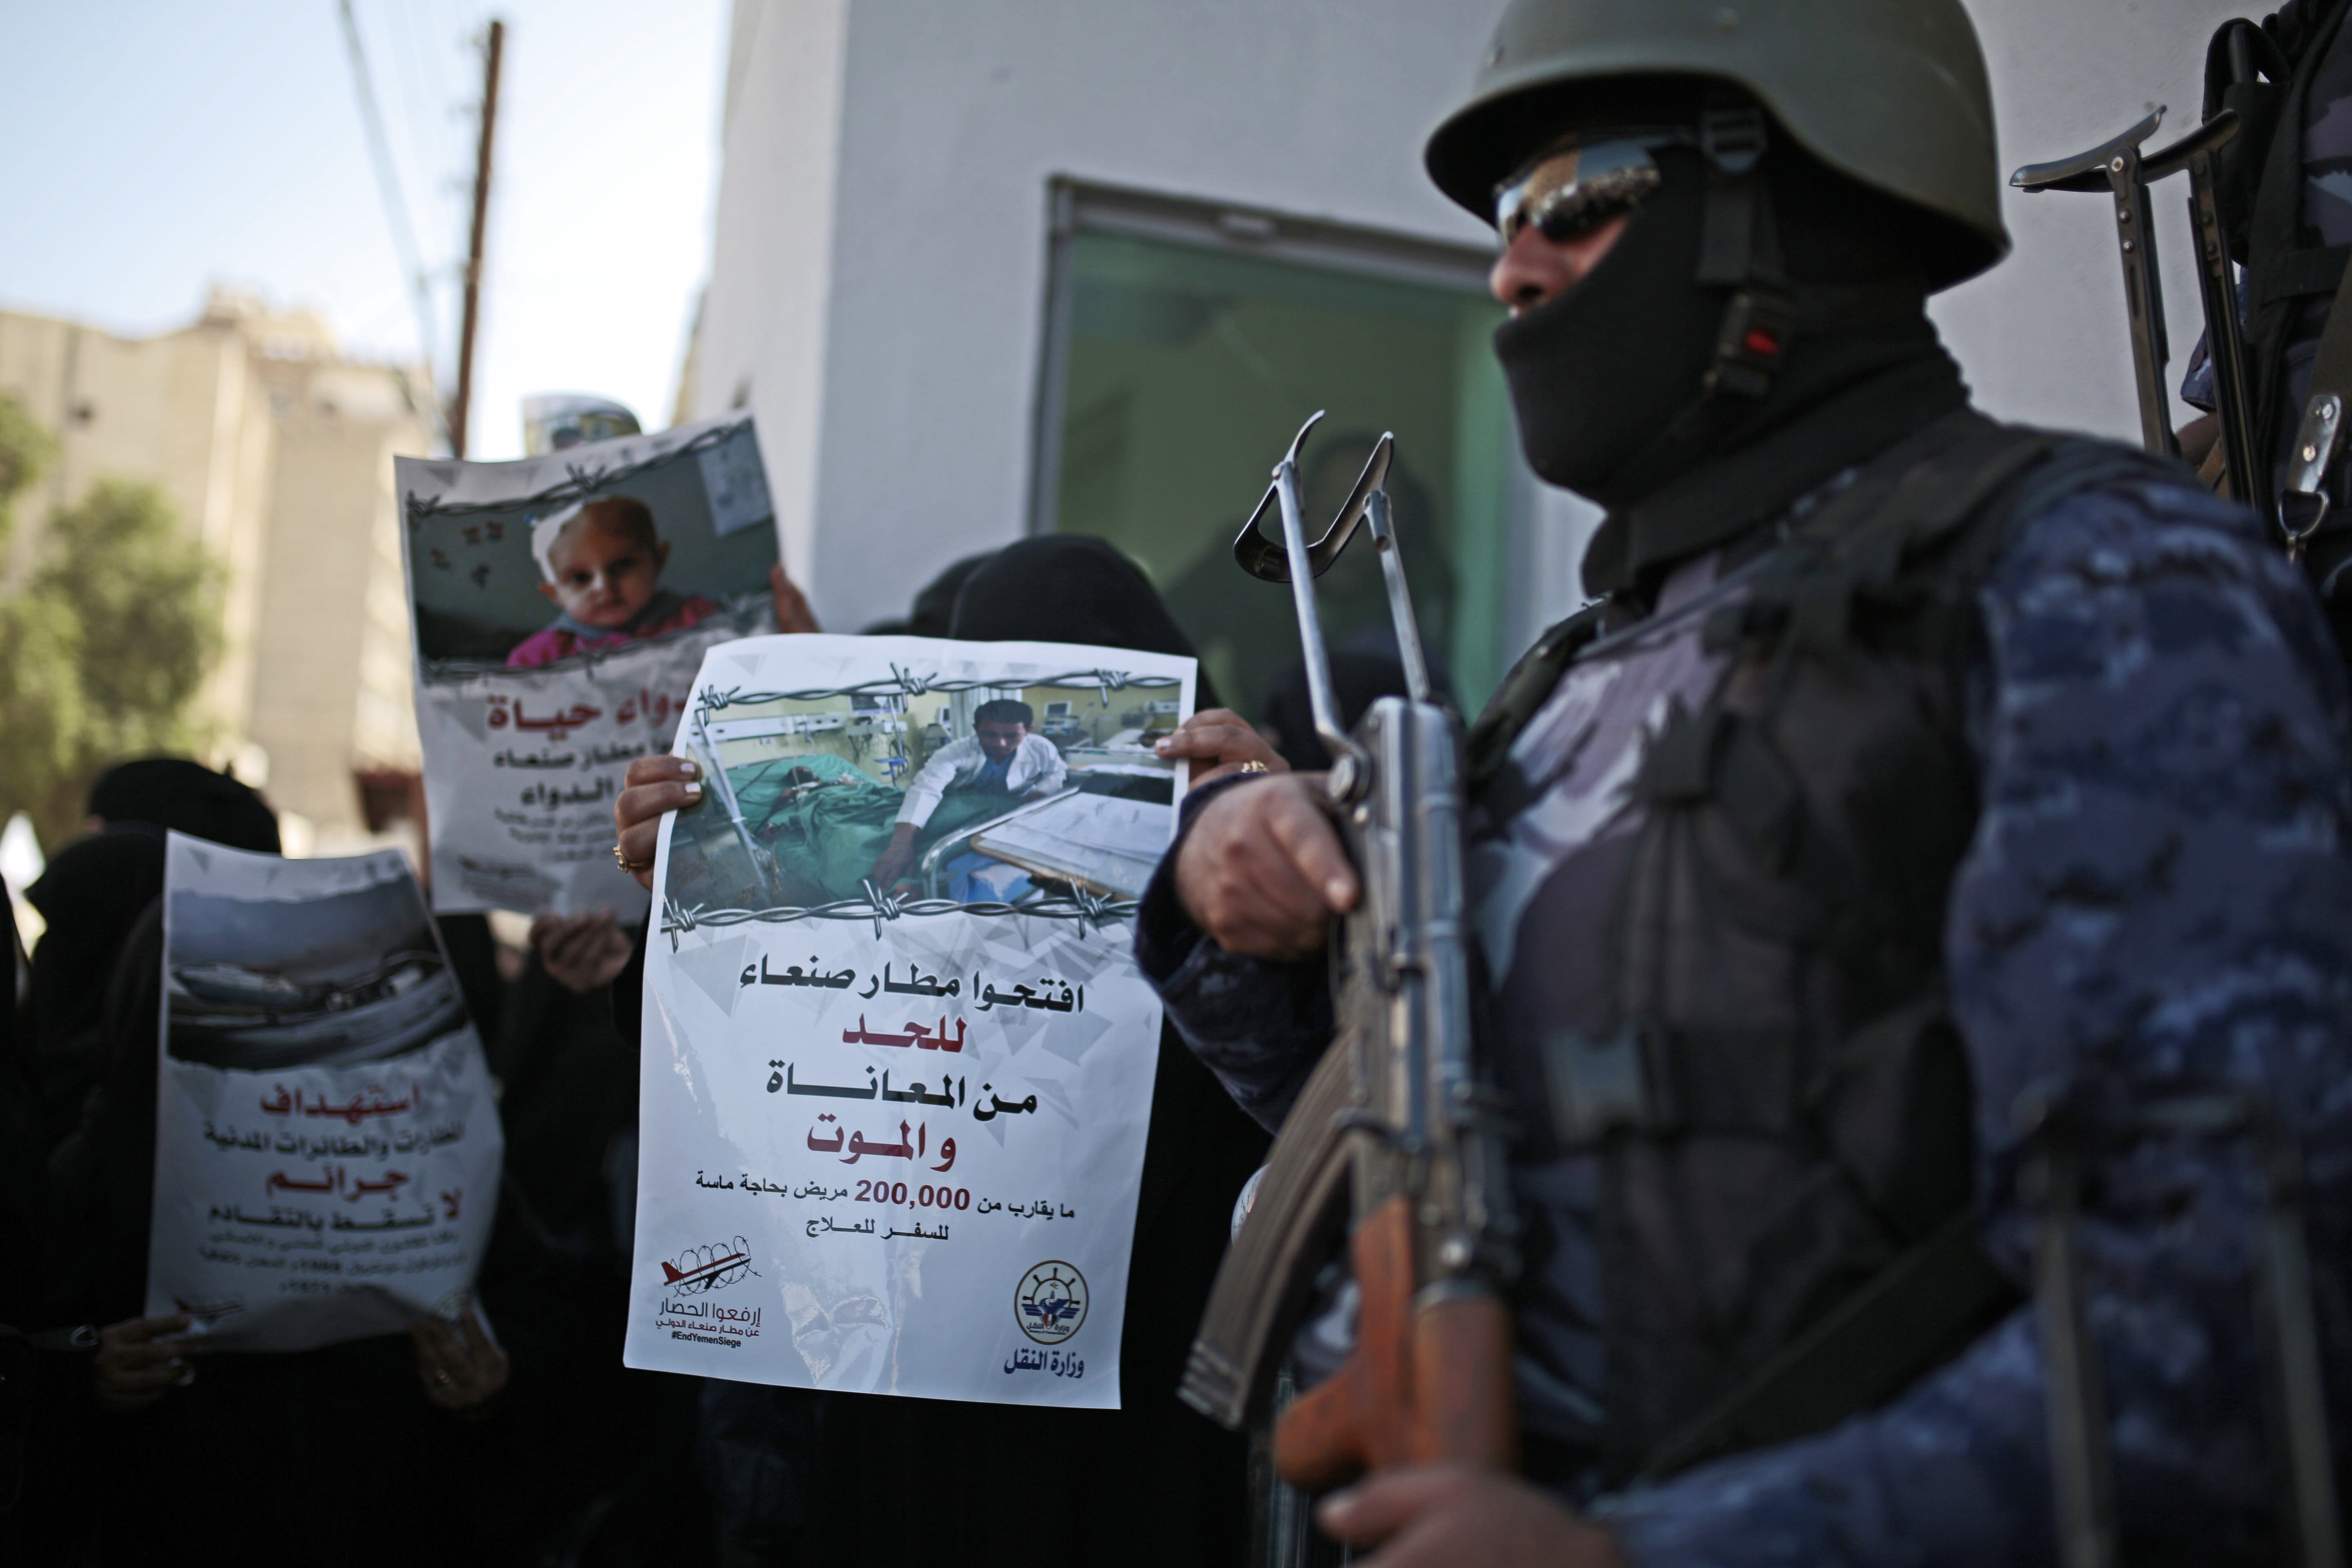 """FILE - In this Dec. 10, 2018 file photo, a Yemeni woman holds a banner with Arabic that reads: """"Open Sanaa airport to limit the suffering and deaths!"""" during a protest calling for the reopening of Sanaa airport to receive medical aid, in front of the U.N. offices in Sanaa, Yemen. The Norwegian Refugee Council and CARE have slammed the Saudi-led coalition for its closure of the airport in Yemen's capital, saying this has prevented thousands of sick civilians from traveling abroad for urgent medical treatment, saying the Sanaa airport's three-year closure has amounted to a """"death sentence"""" for many sick Yemenis. The two aid groups appealed late Monday, Aug 5, 2019 on Yemen's warring parties to come to an agreement to reopen the airport for commercial flights to """"alleviate humanitarian suffering caused by the closure."""" (AP Photo/Hani Mohammed, File)"""